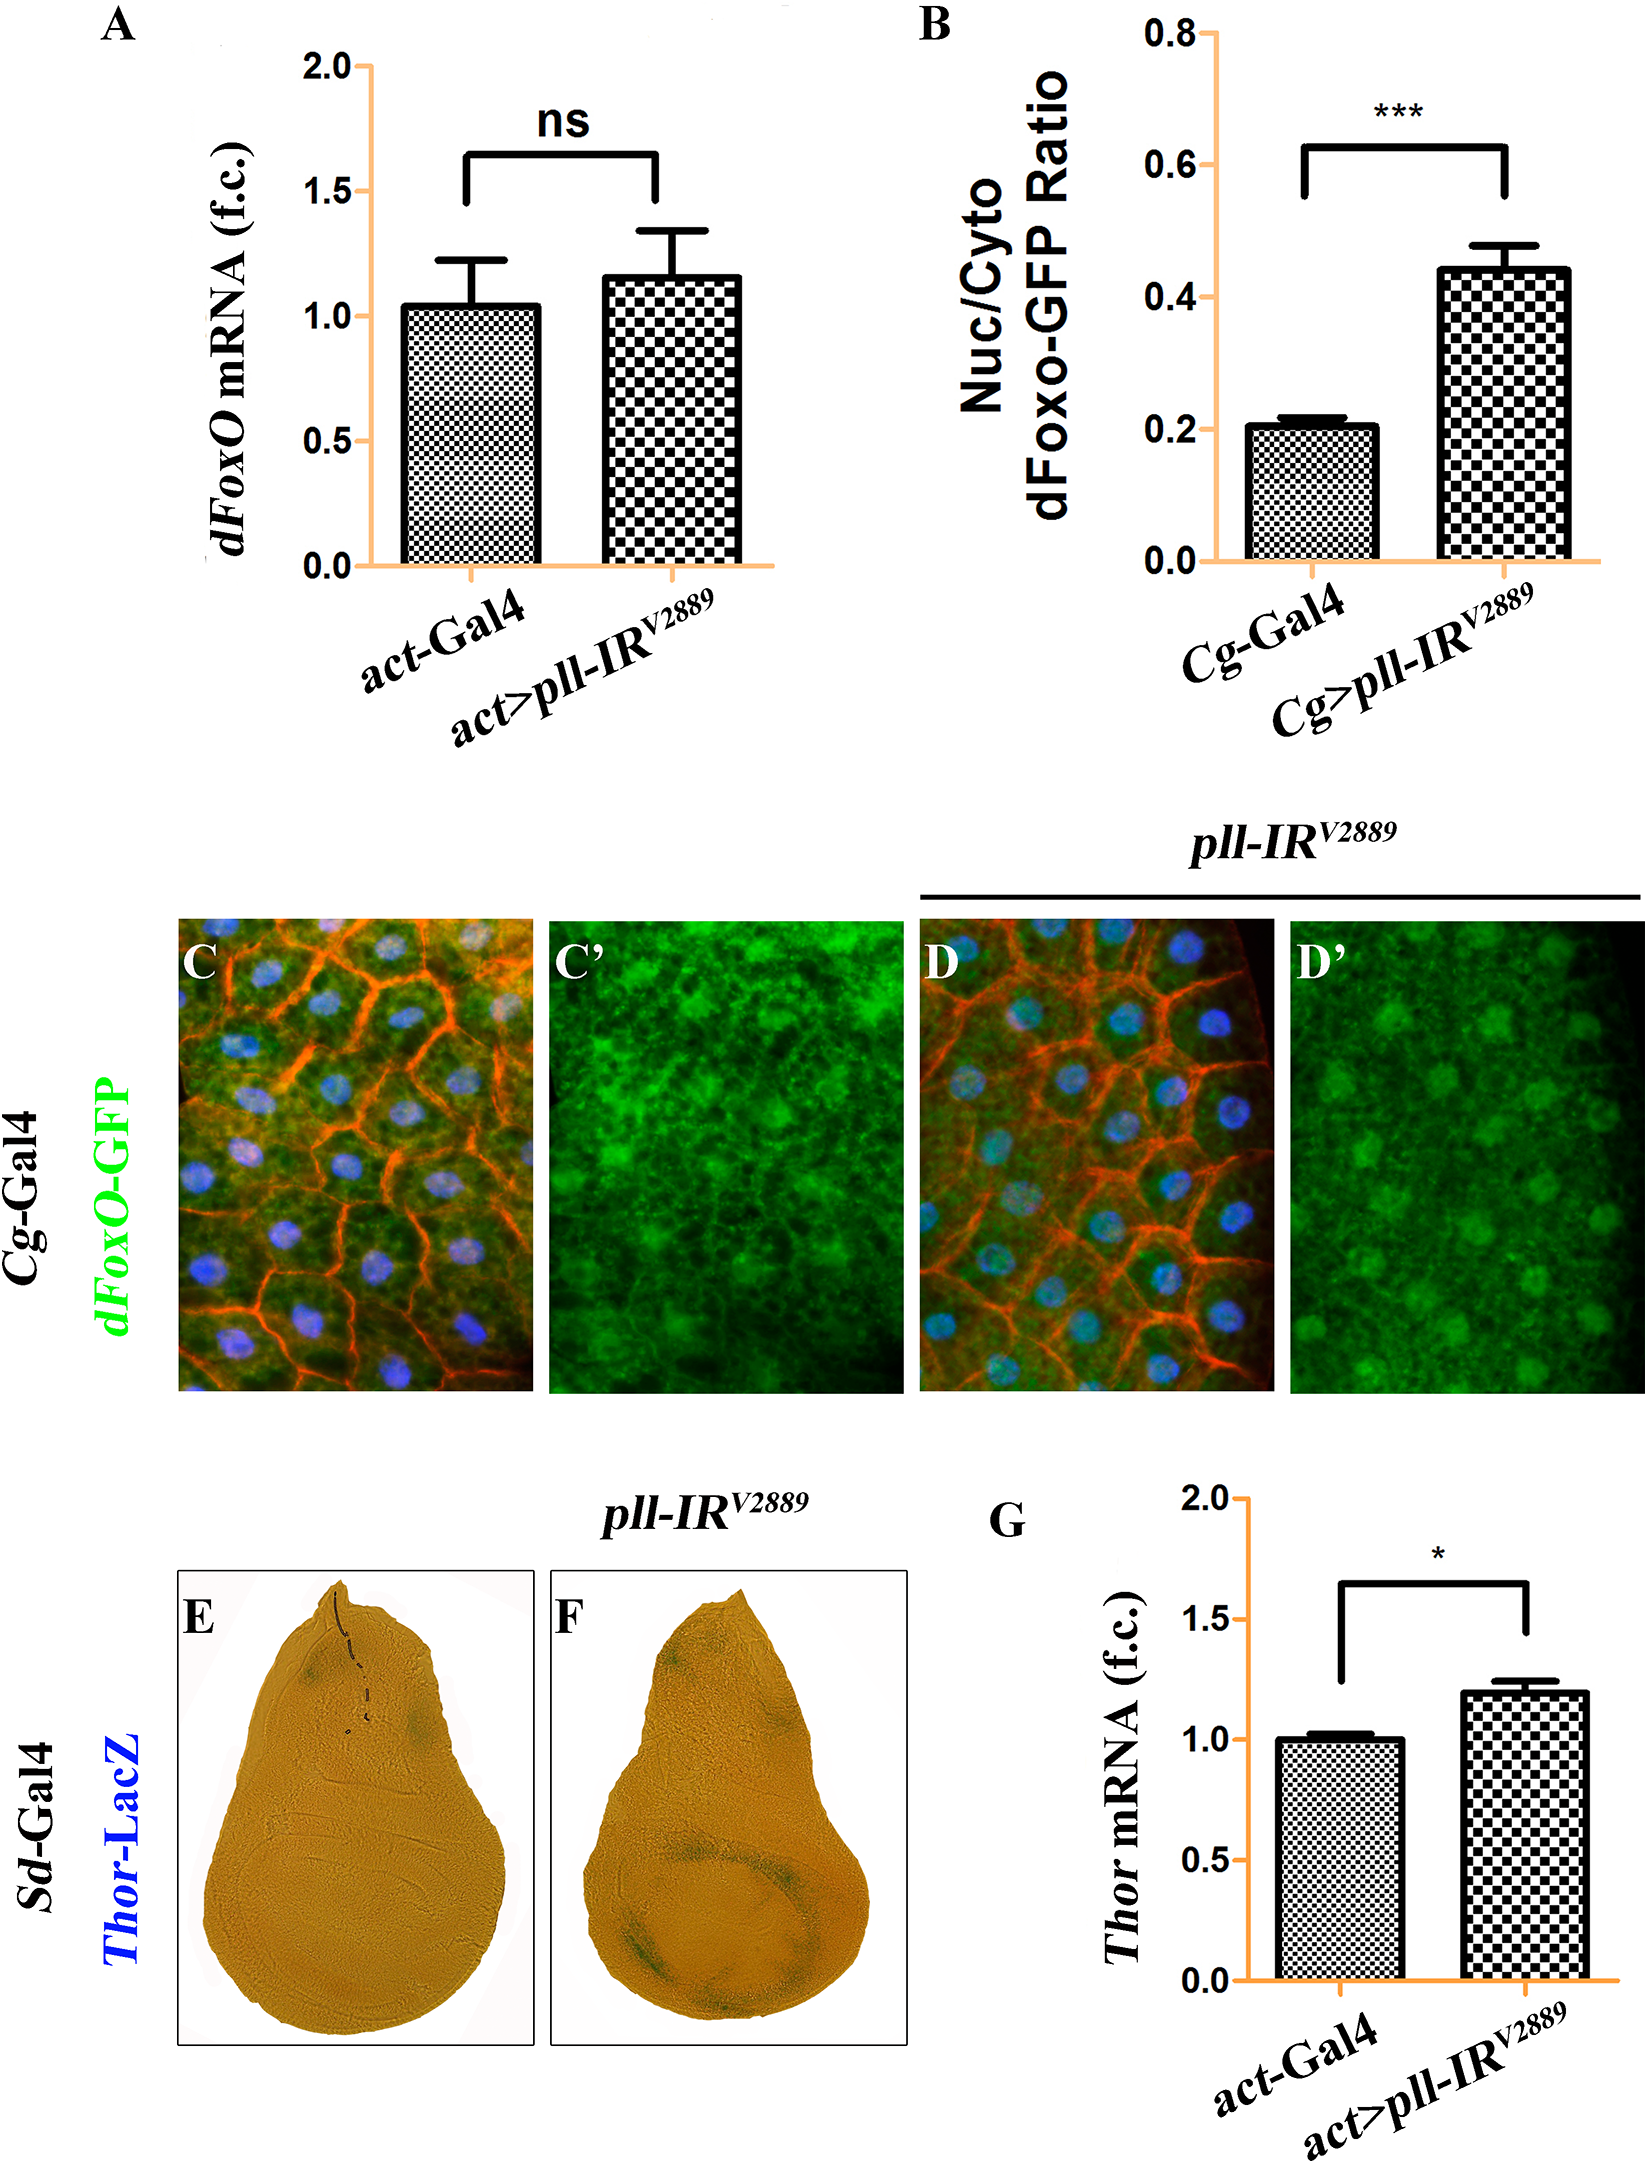 Loss of <i>pll</i> promotes dFoxO nuclear localization and transcriptional activity.